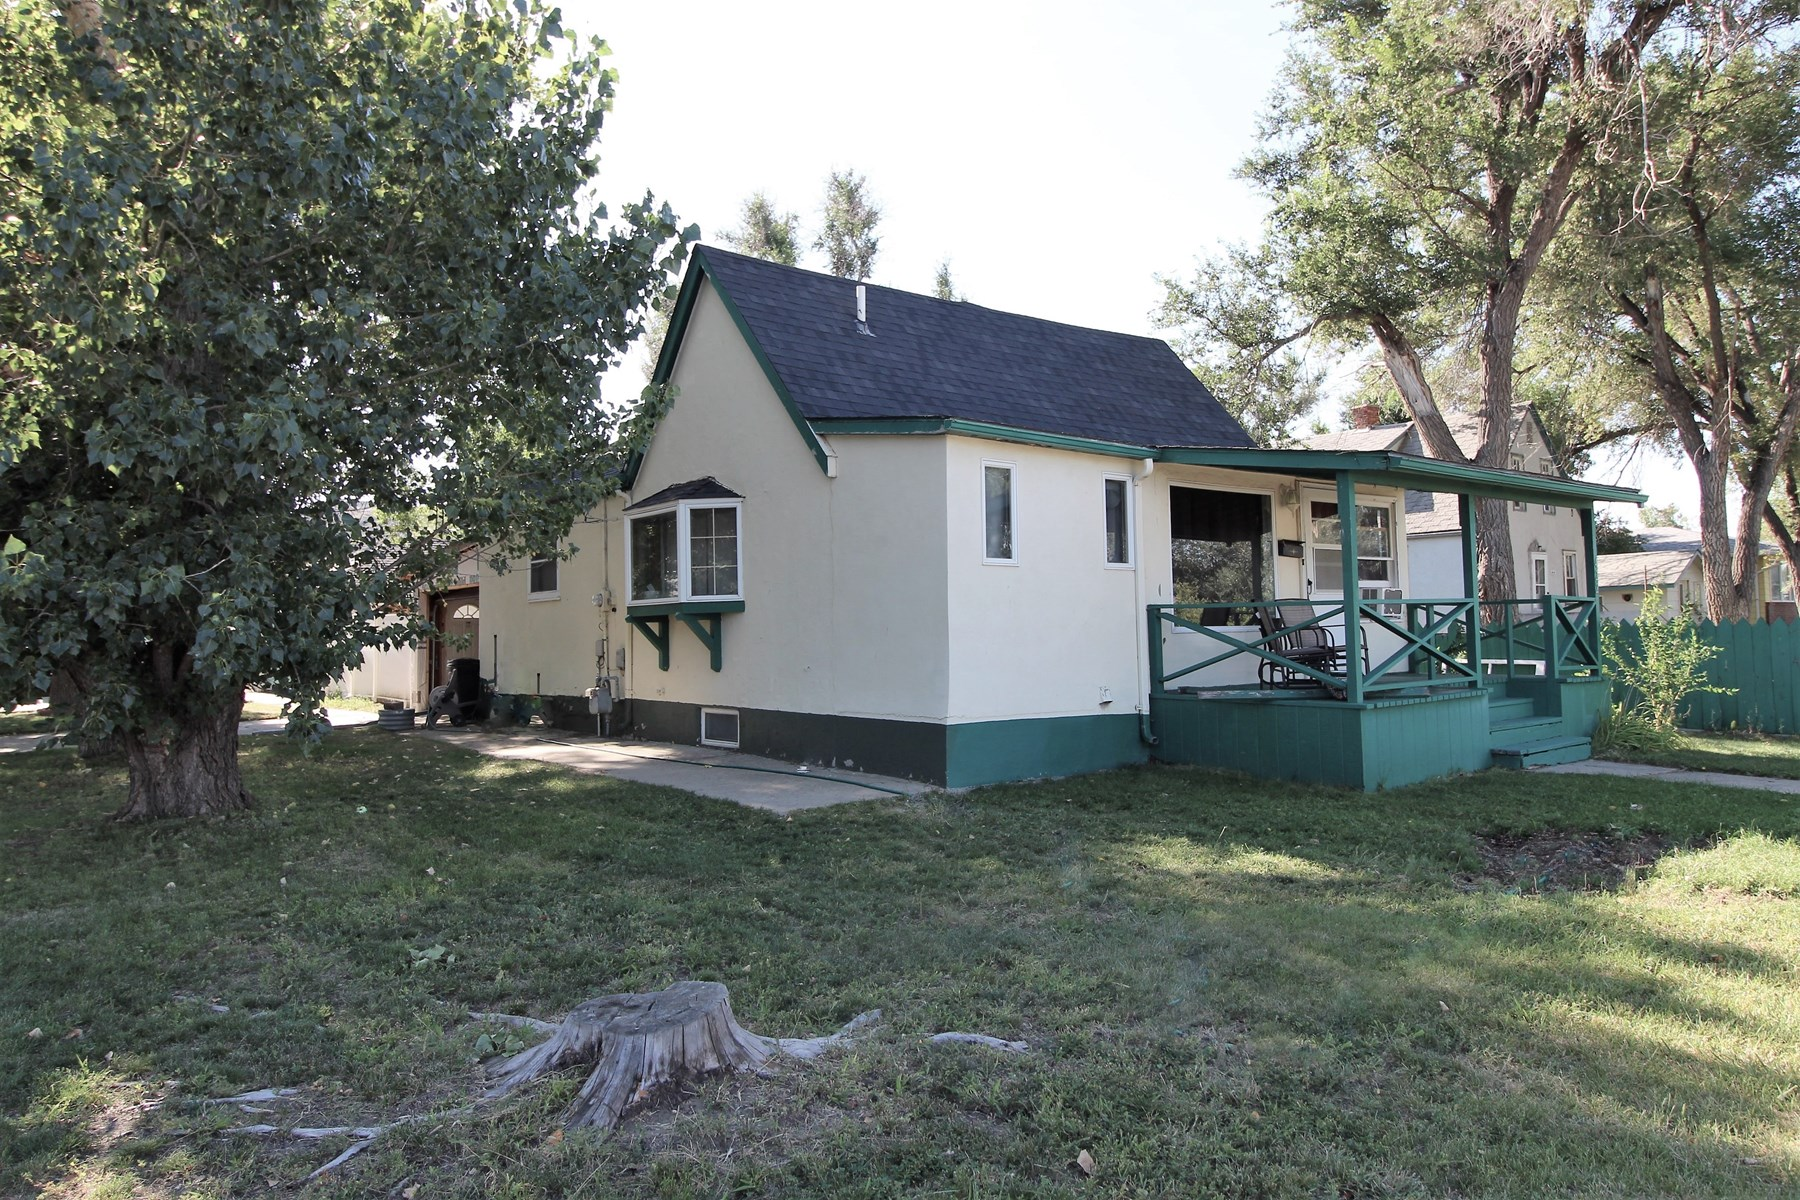 2 Bedroom 2 Bath Single Family Home In Glendive